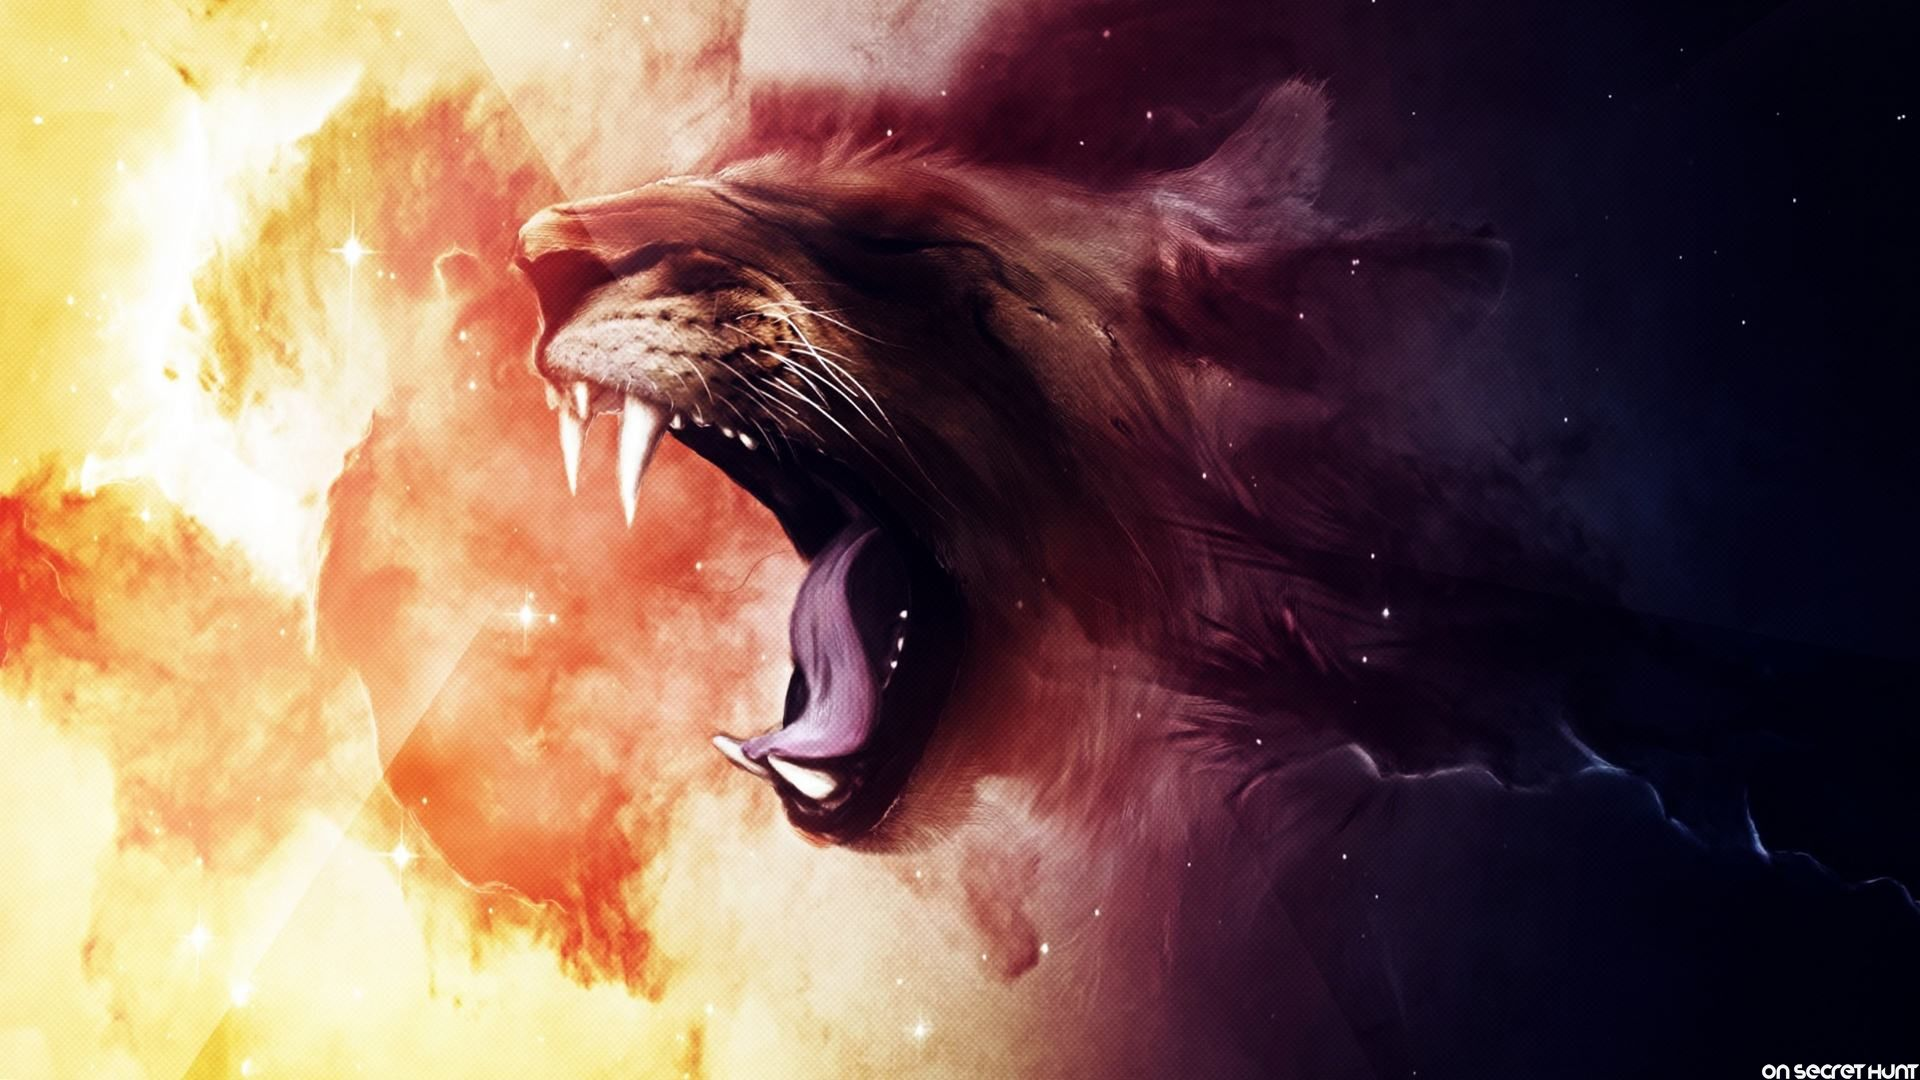 Roaring-Animated-Lion-Wallpaper